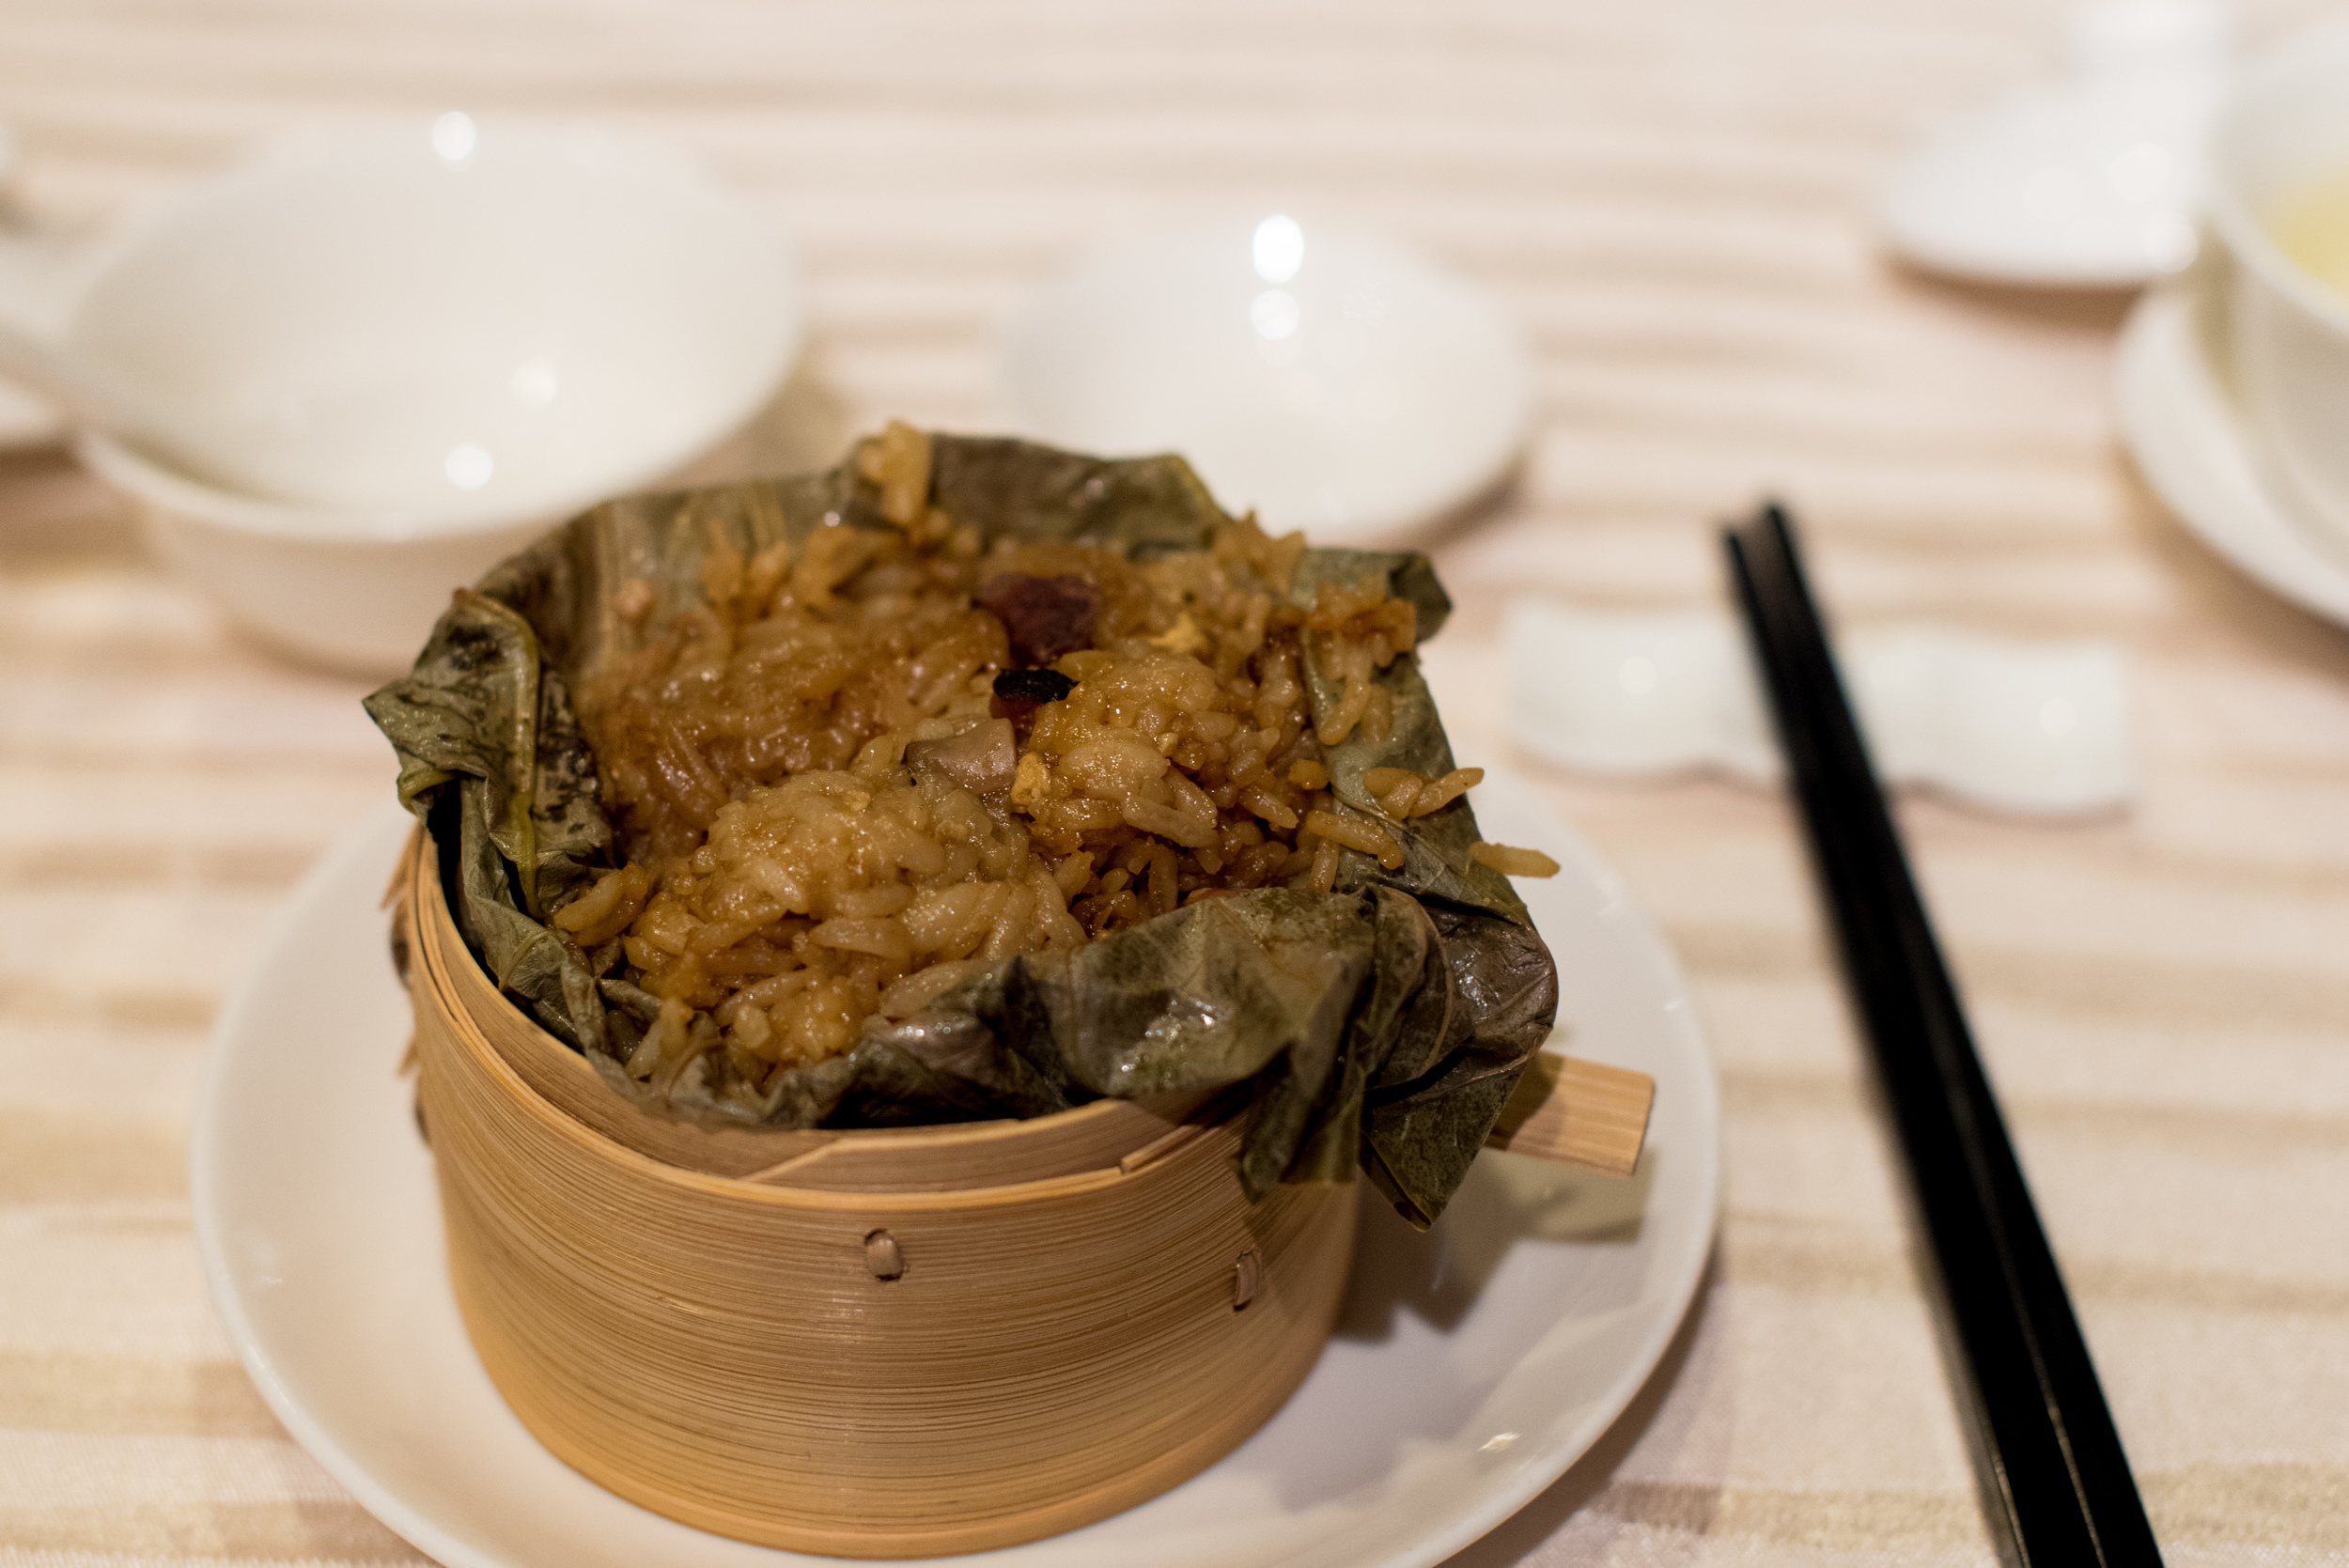 Fragrant Glutinous Rice, Preserved Meat, Diced Taro in Lotus Leaf     Wan Hao - Singapore Marriott Tang Plaza Hotel